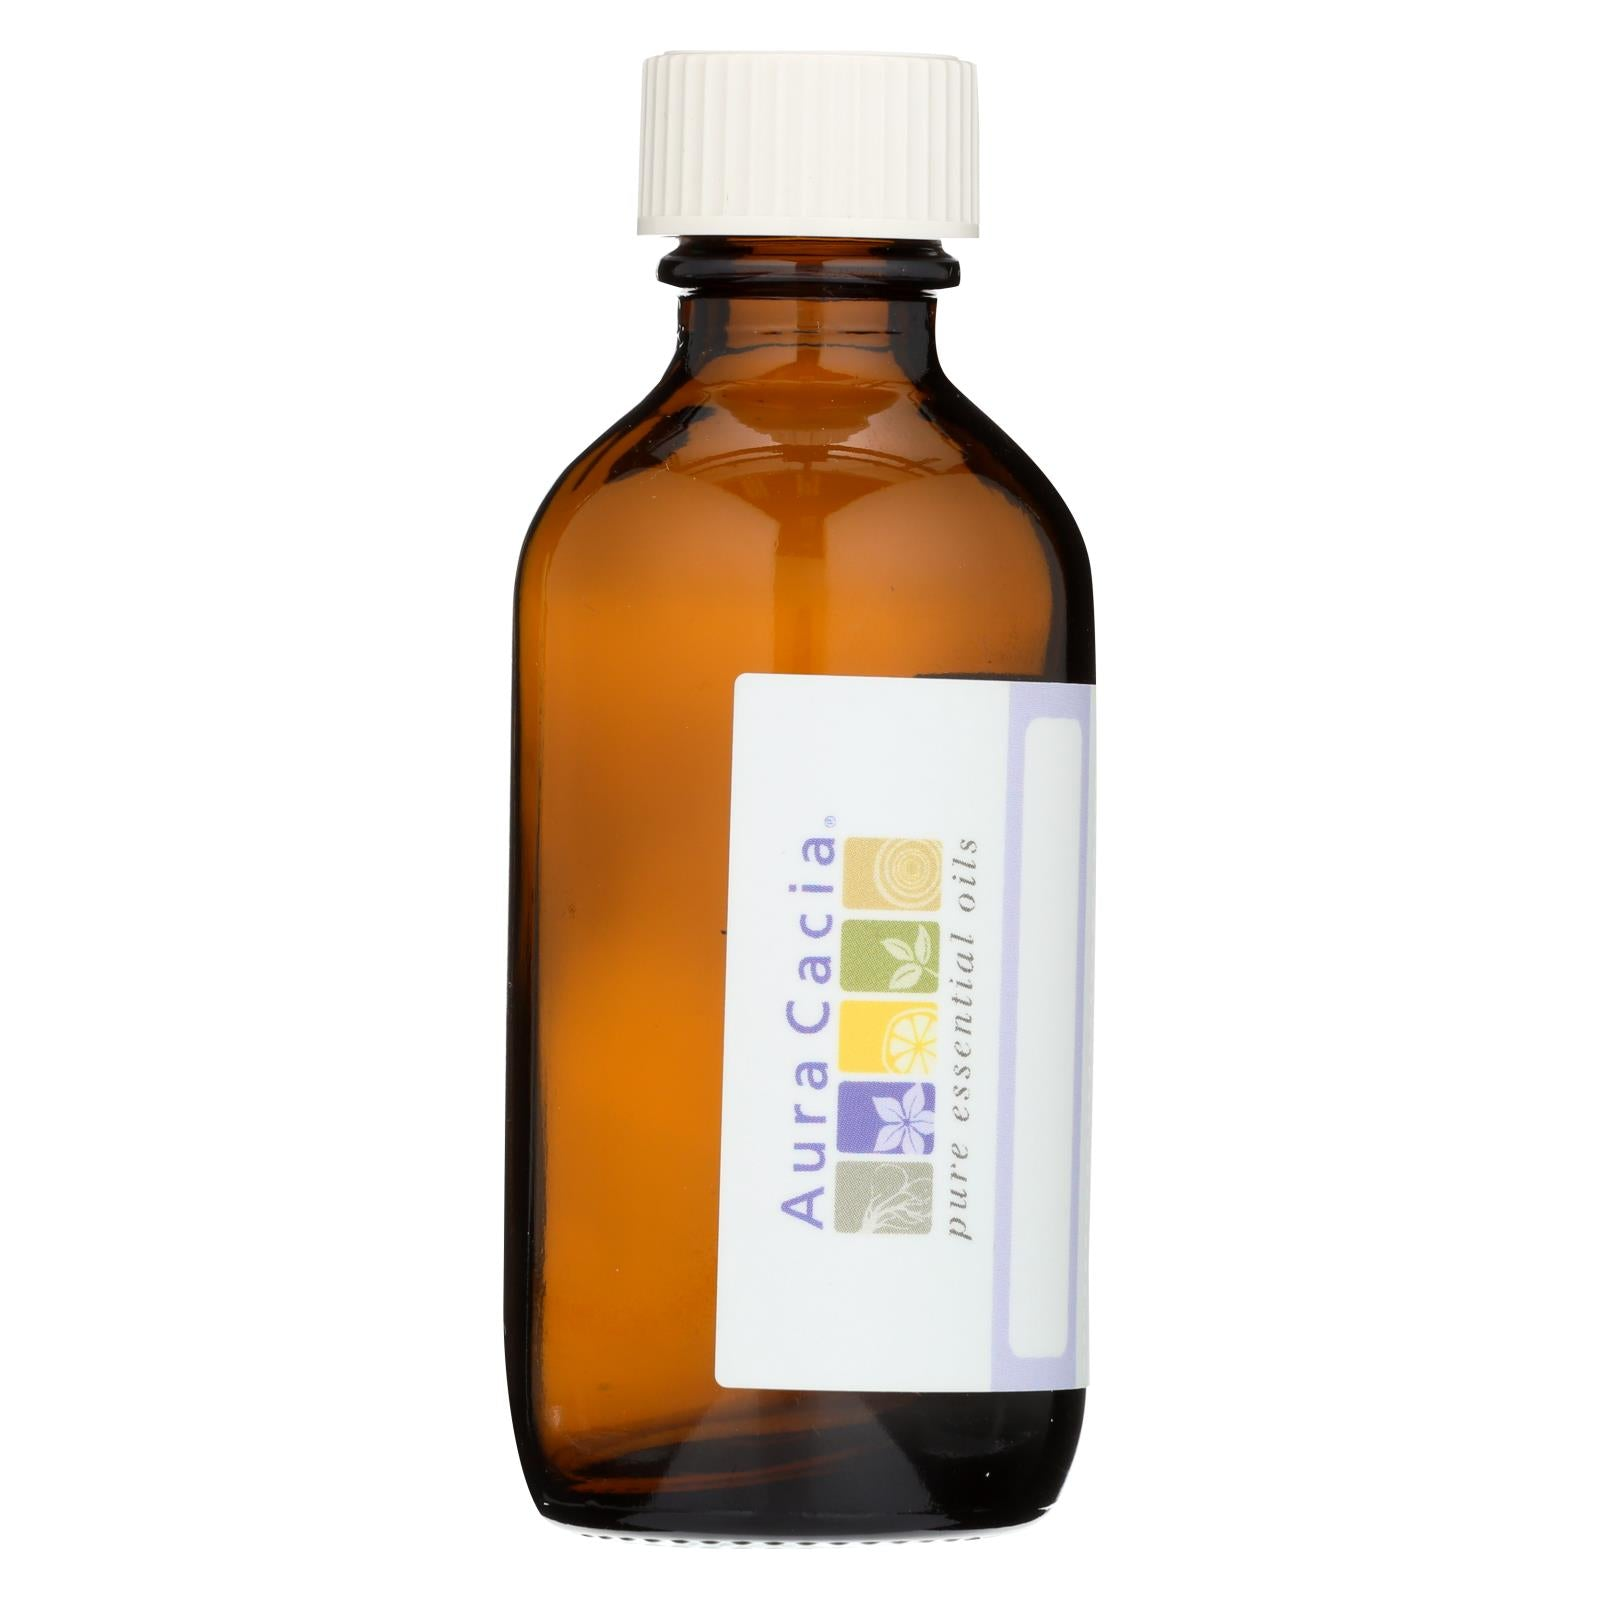 Buy Aura Cacia Bottle - Glass - Amber with Writable Label - 2 oz - Aromatherapy from Veroeco.com